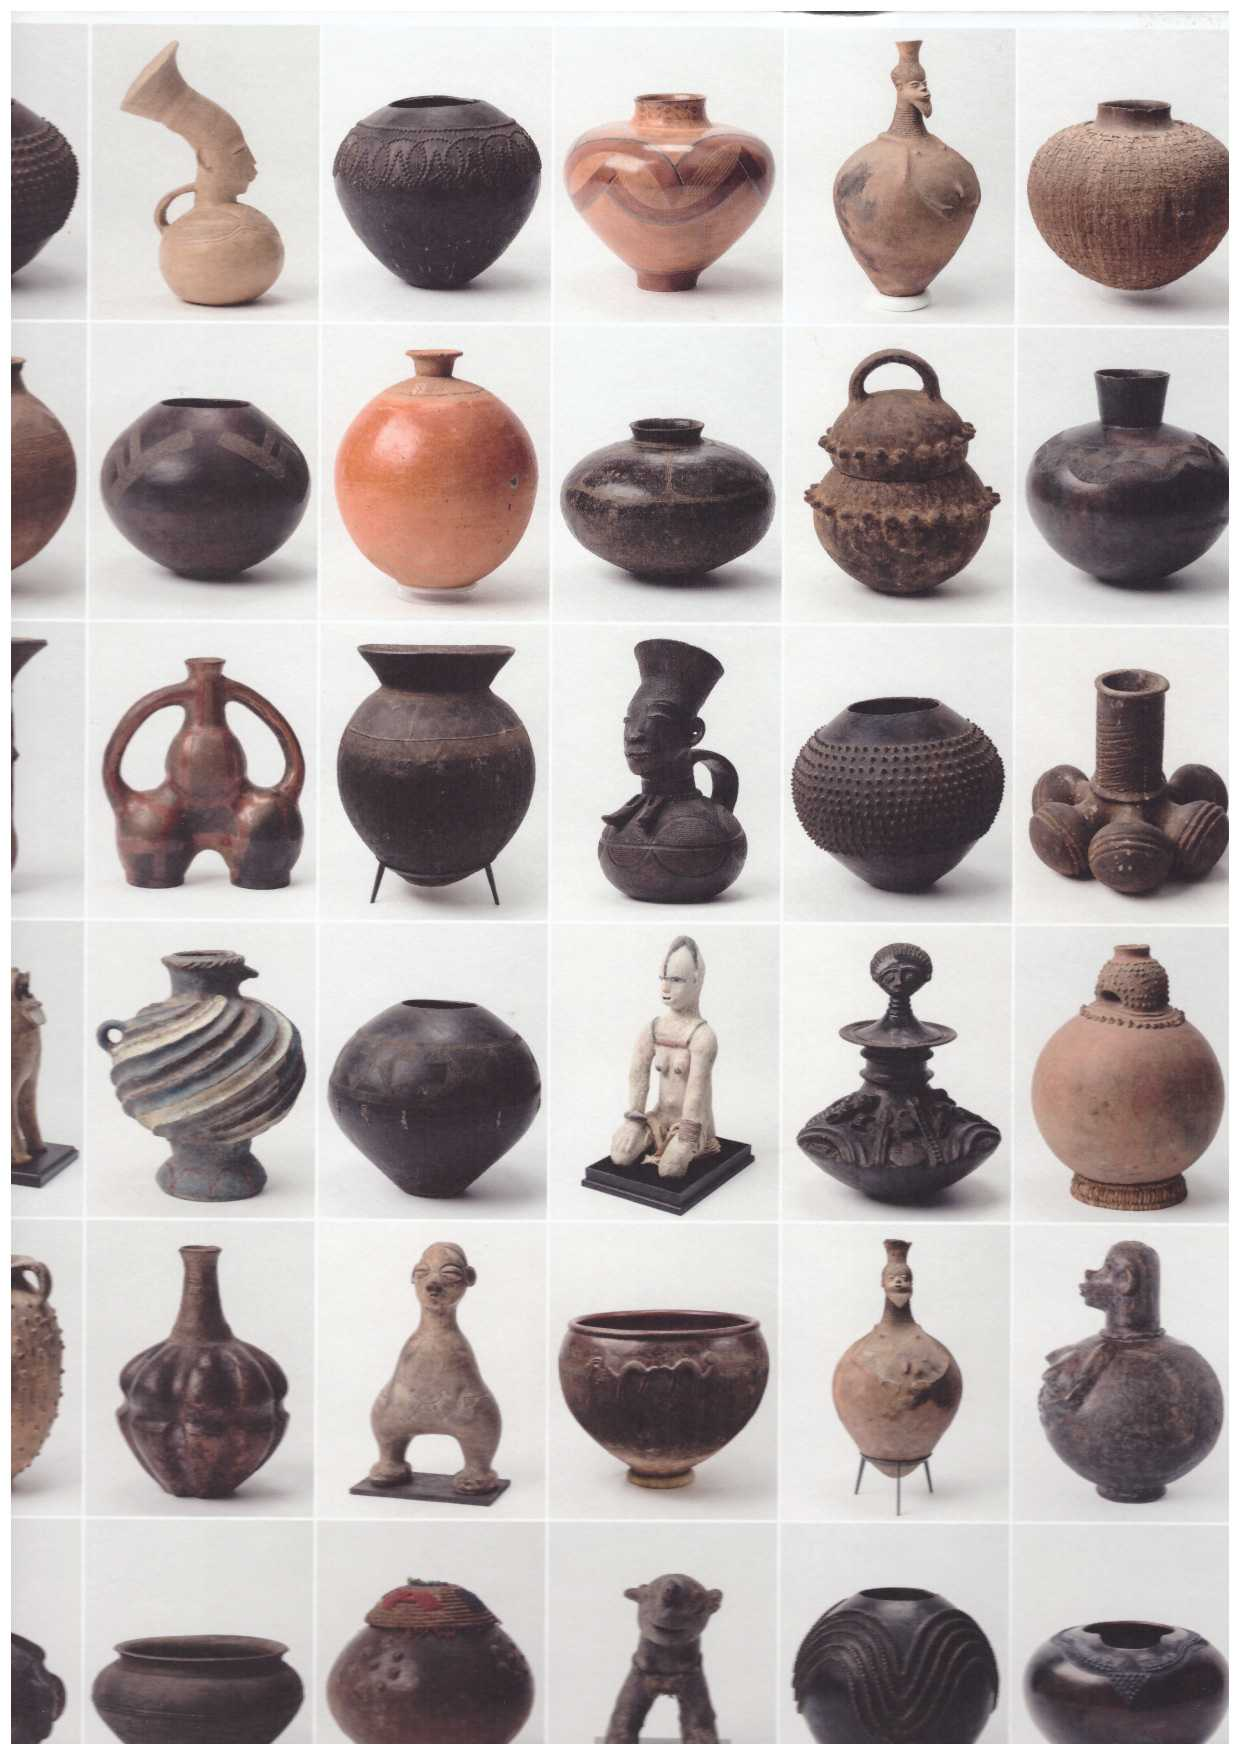 NOLLERT, Angelika (ed.) - African Ceramics. A Different Perspective